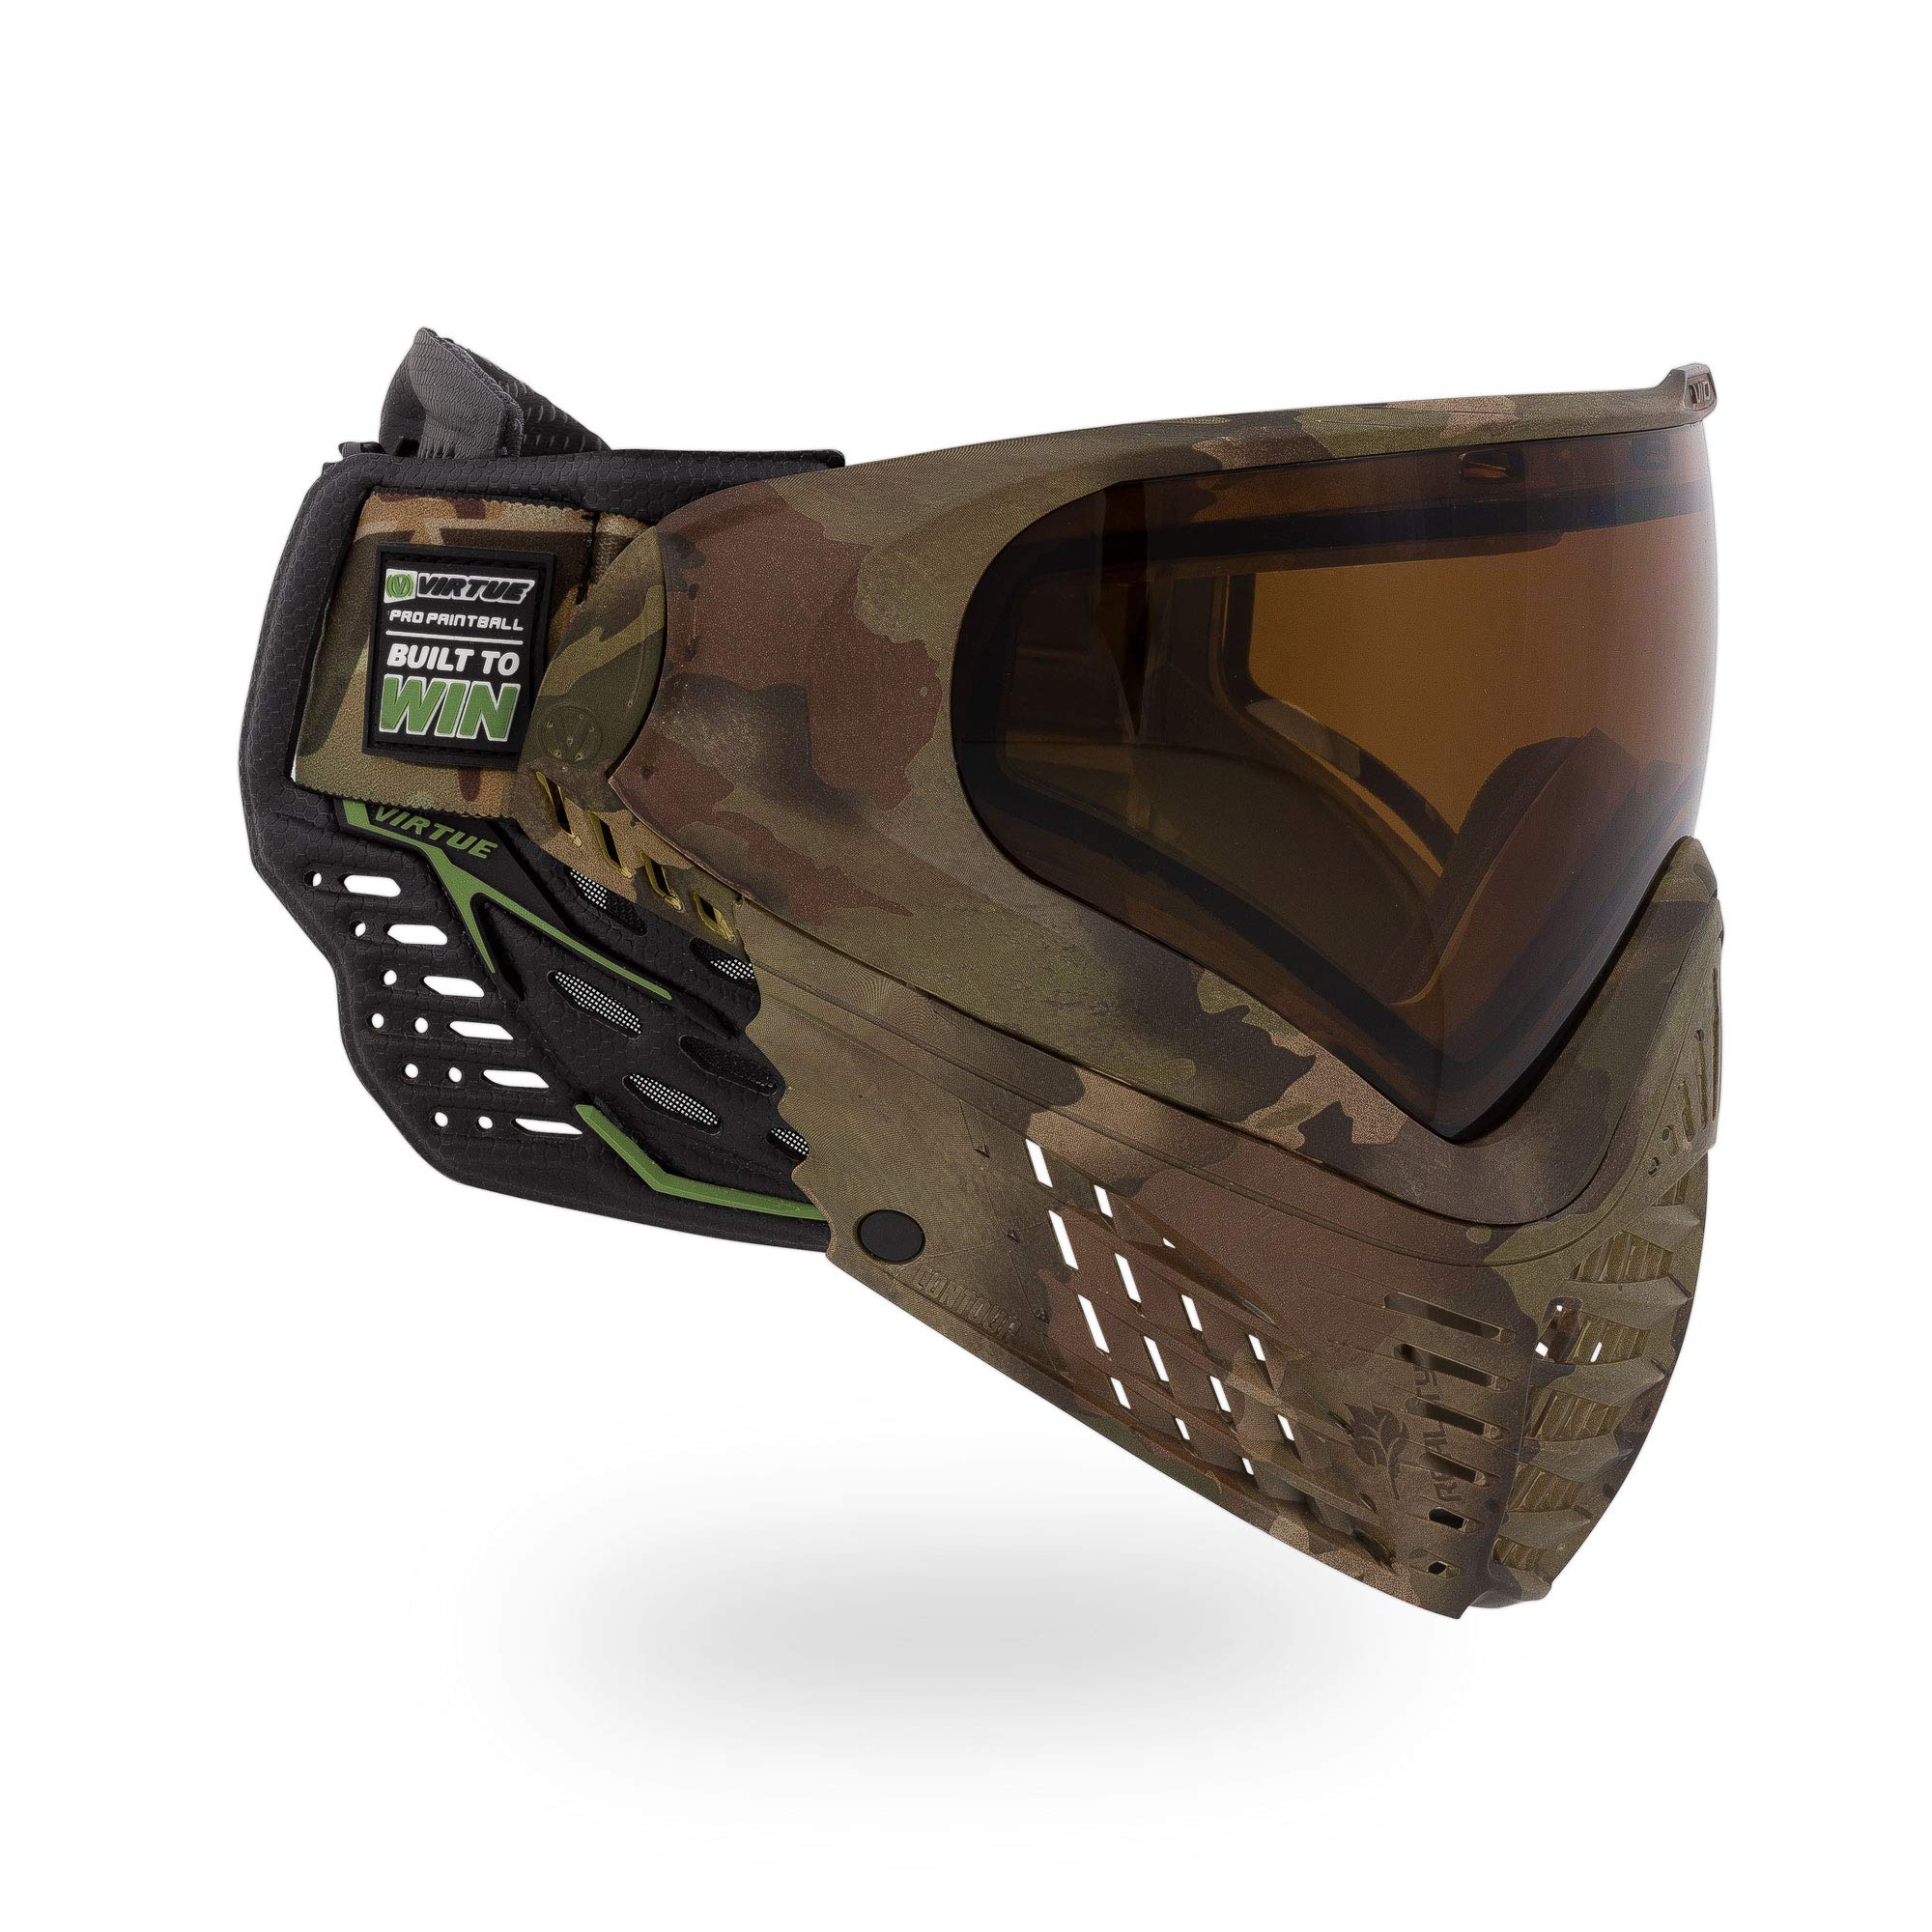 Virtue VIO Contour II Thermal Paintball Goggles/Masks - Reality Brush Camo by Virtue Paintball